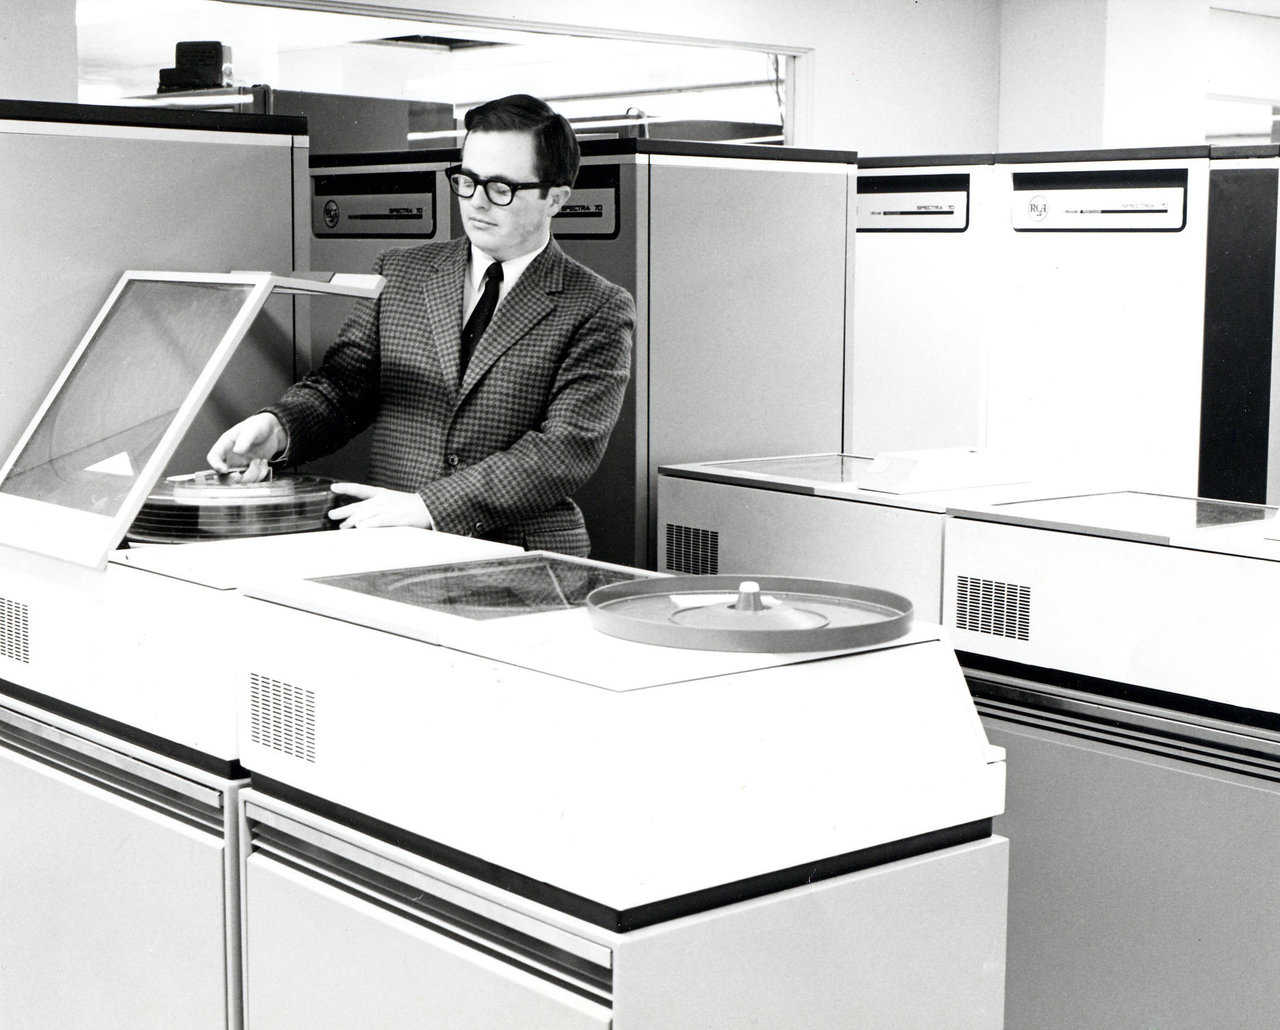 David B. South in the computer center at Chicago Northwestern Railroad in Chicago, Illinois, 1968.